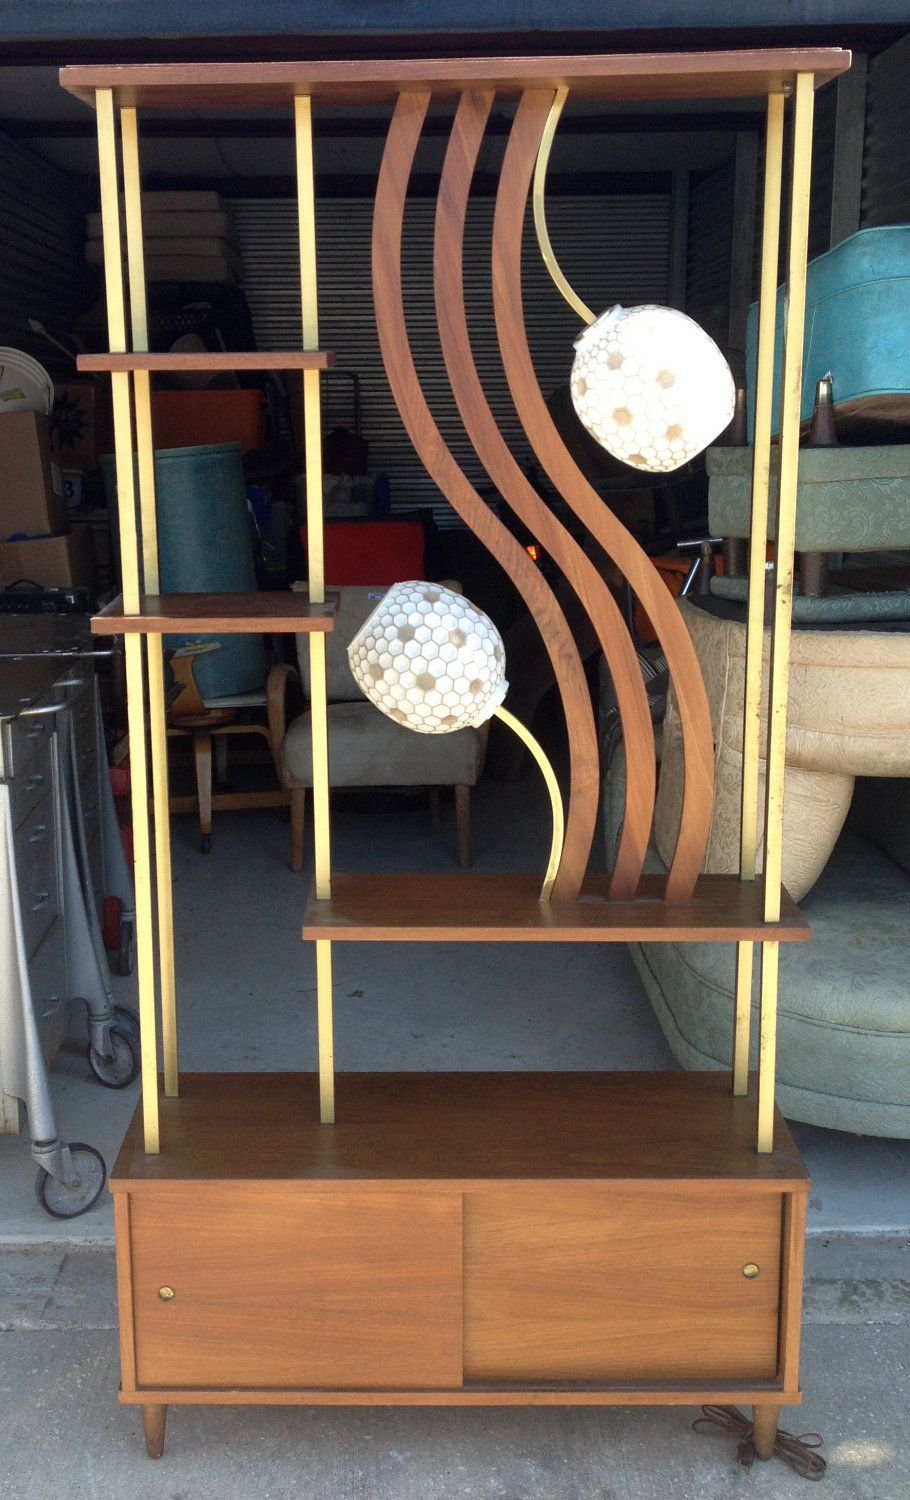 Vintage room divider with shelving and lamps midcentury modern